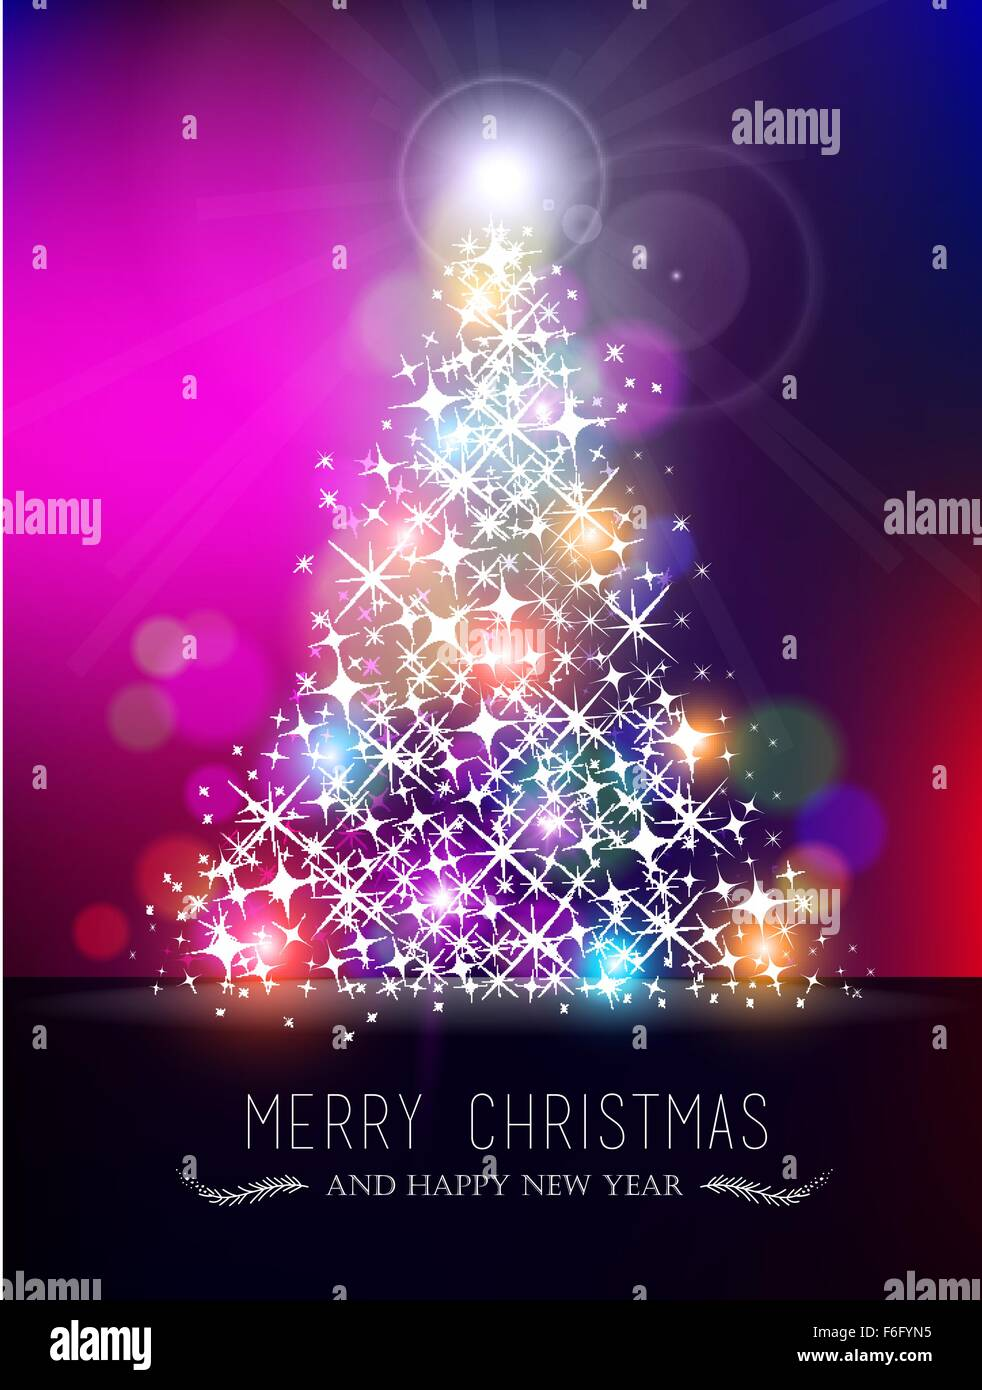 Merry christmas happy new year bokeh style greeting card design merry christmas happy new year bokeh style greeting card design xmas pine tree shape made with sparkle stars and colorful blurs m4hsunfo